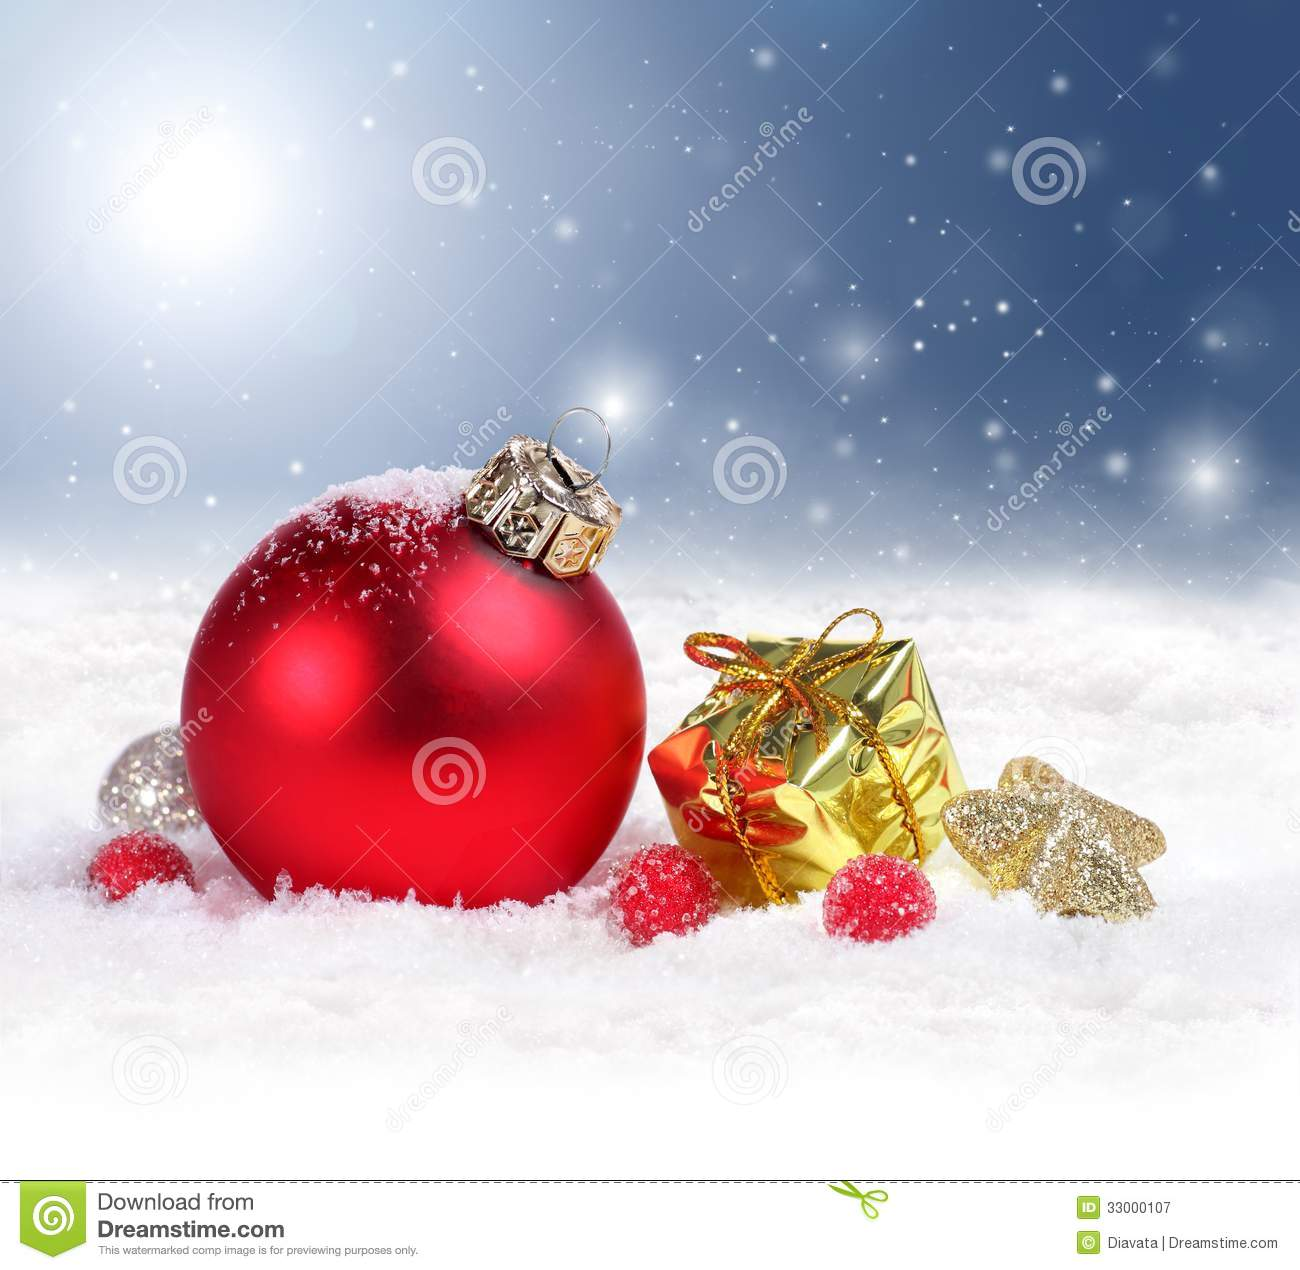 Christmas Background With Red Ornament And Snowflakes Royalty Free ...